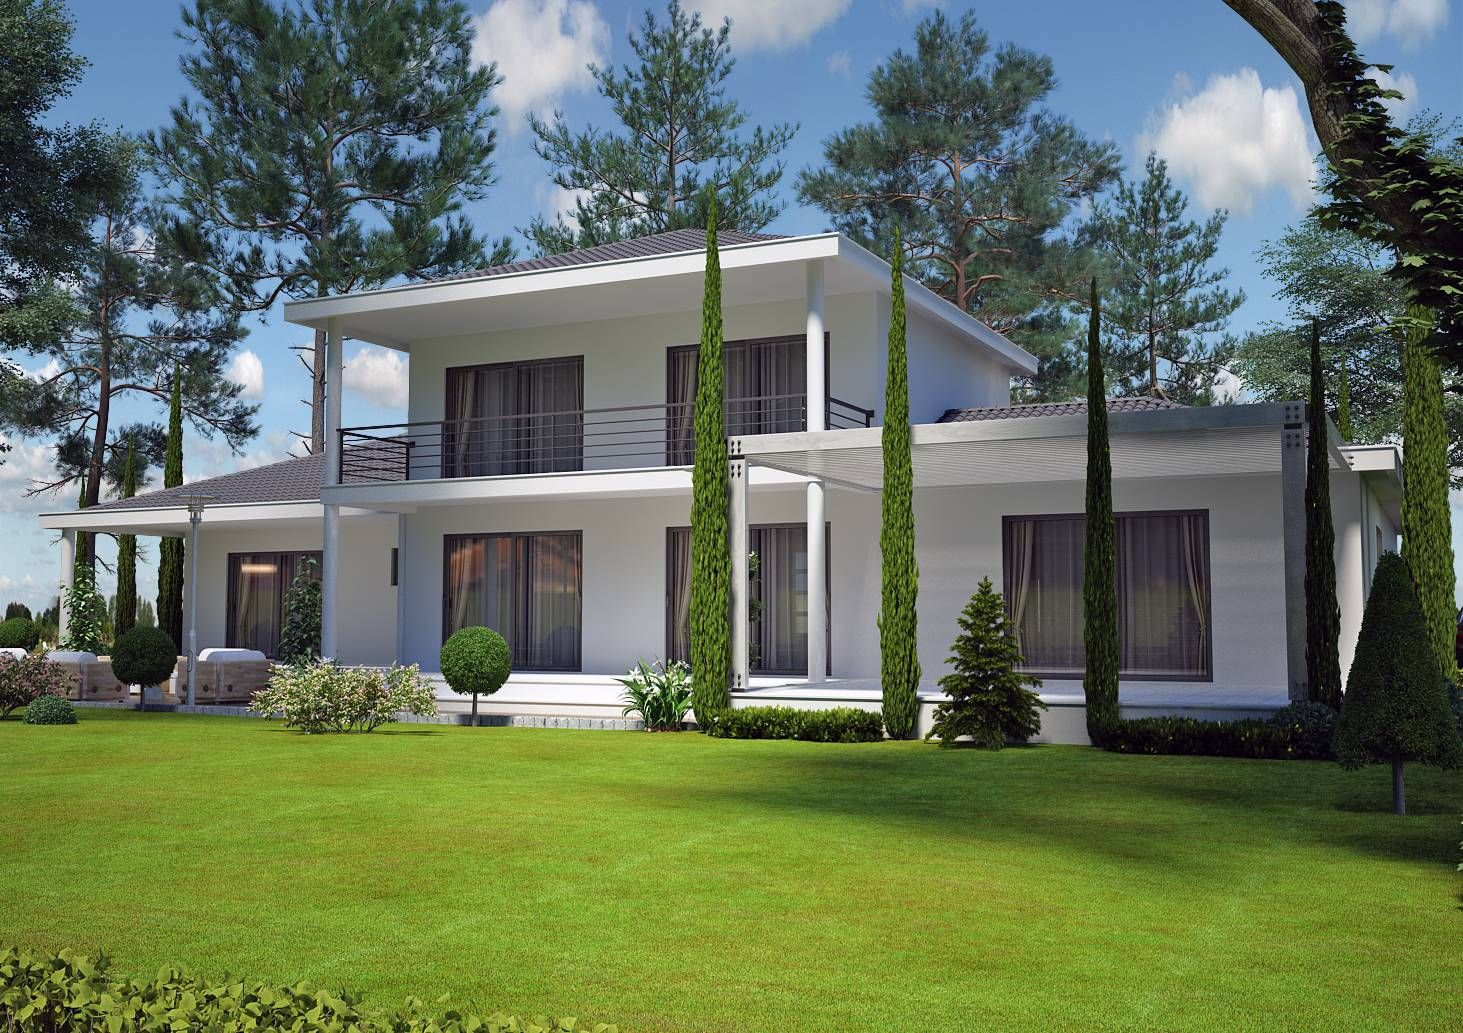 Villa contemporaine 150 m2 etage mod le pinede salon for Interieurs maisons contemporaines